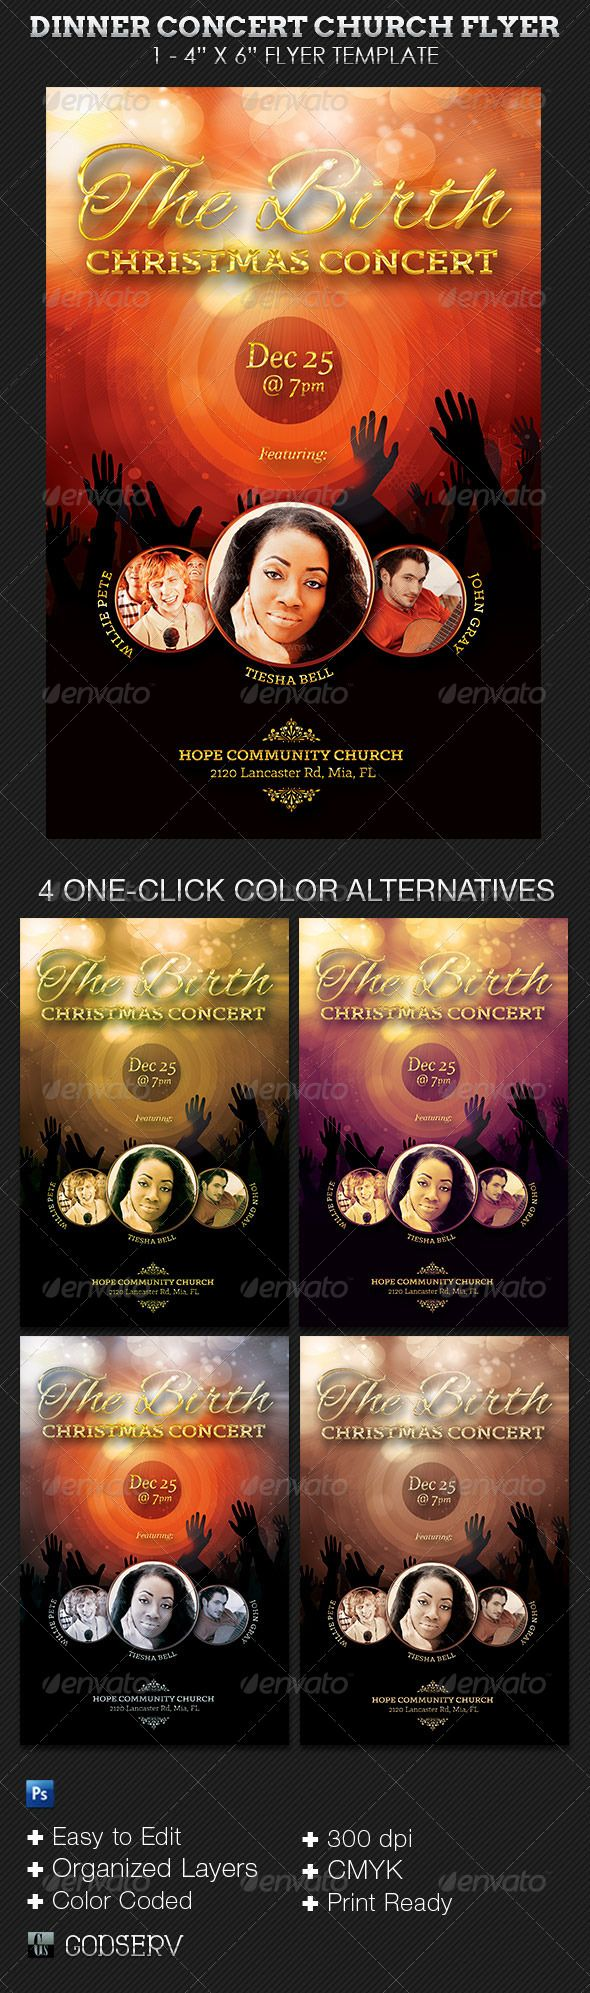 best ideas about concert flyer poster layout birth christmas concert flyer